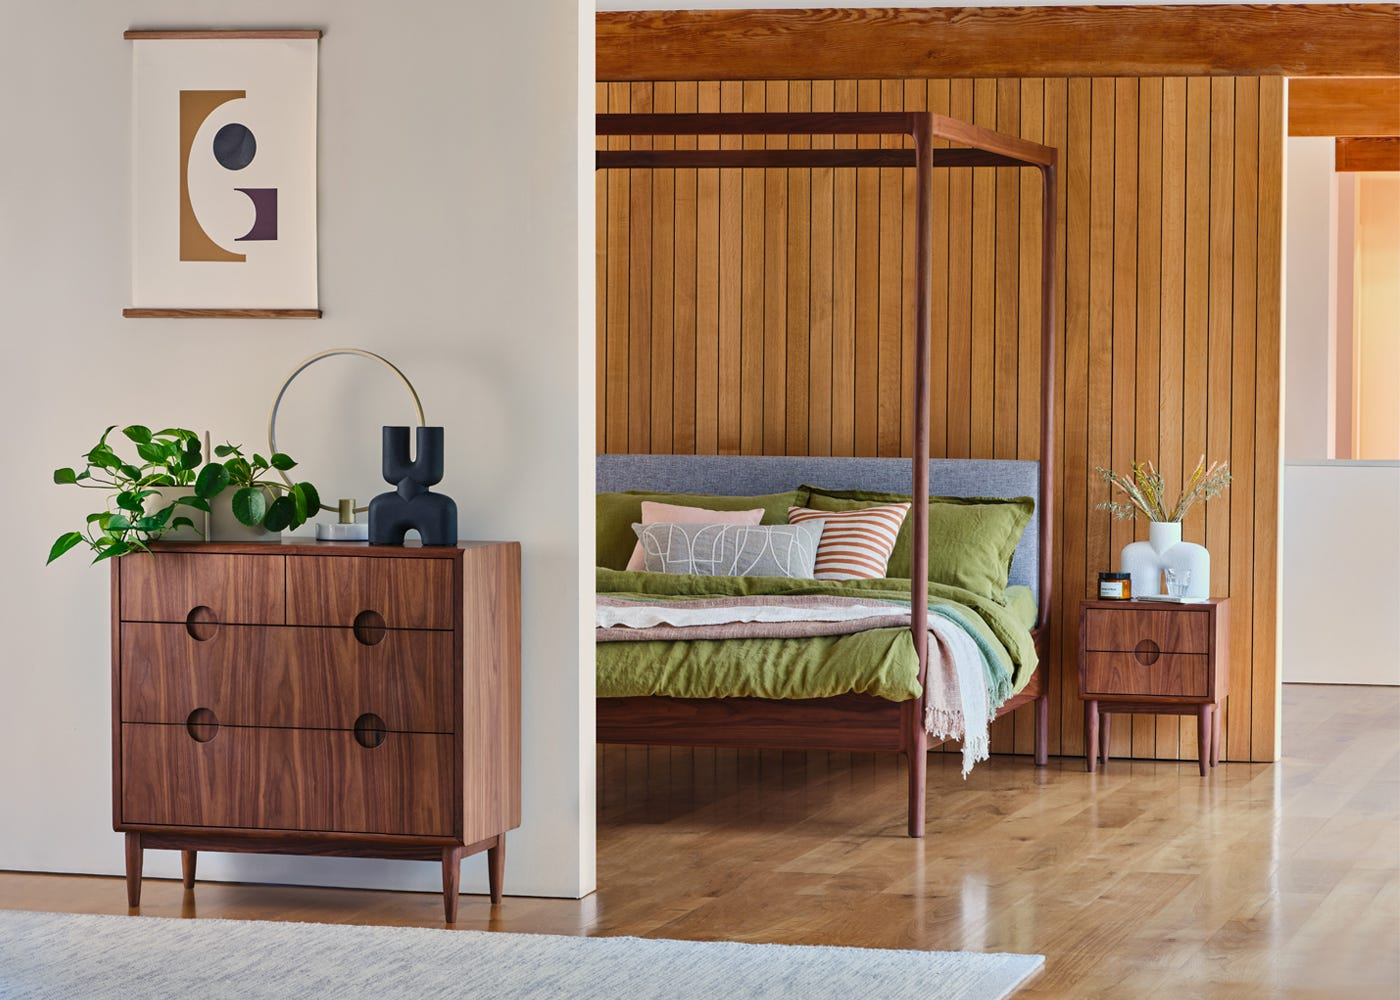 Paired here with the Marlow Bed and Amira bedroom furniture